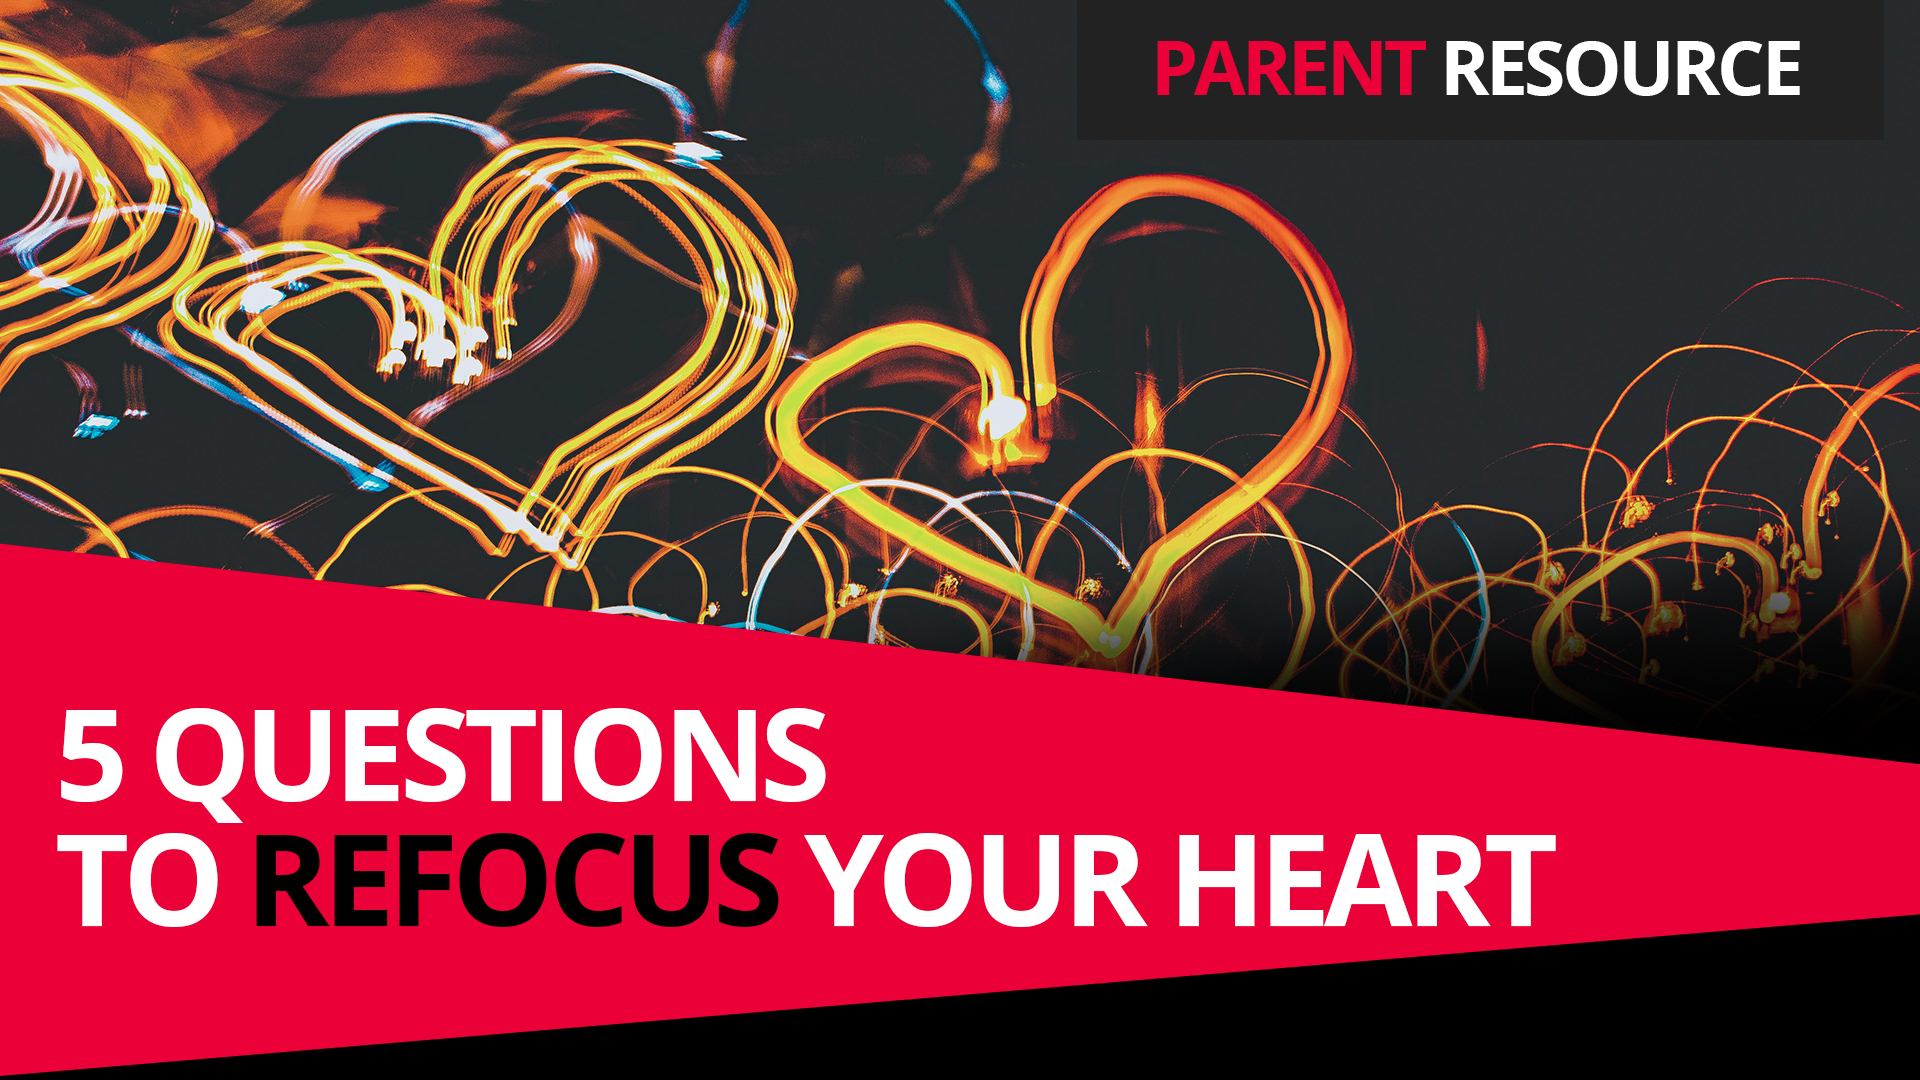 Parent Ministry Resource: Re-Focus Your Heart